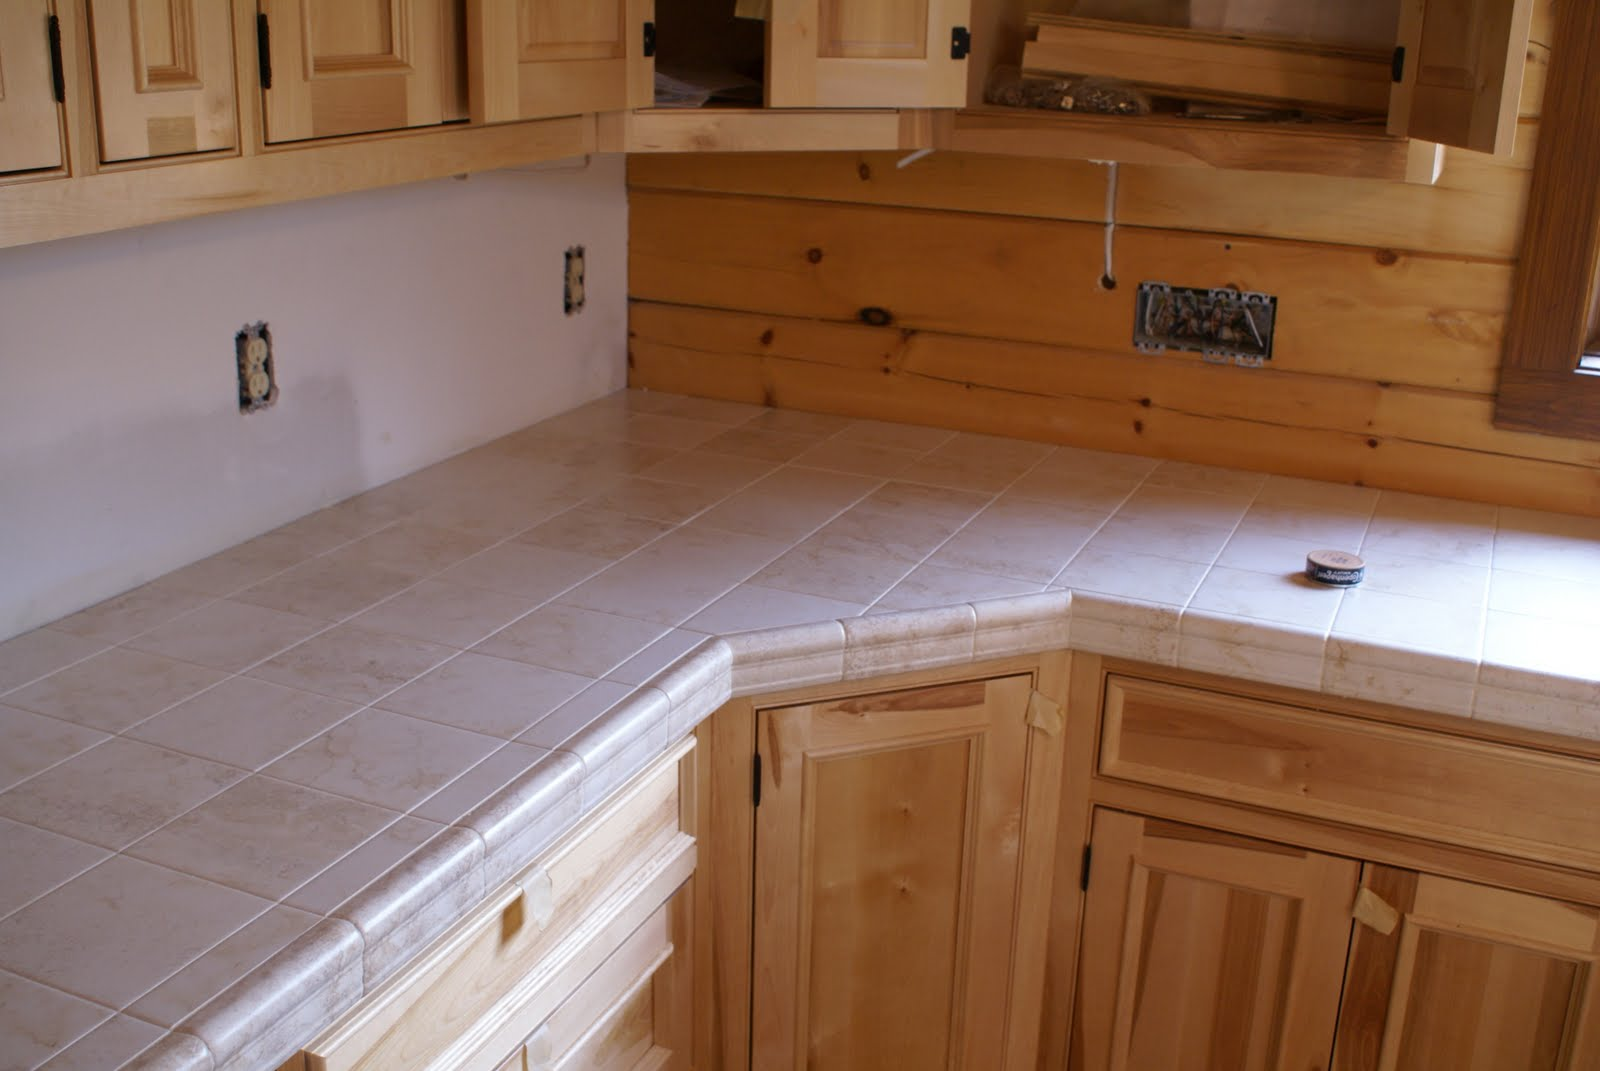 Tile Countertops For Kitchens : Hidden bend retreat romney west virginia countertop tile